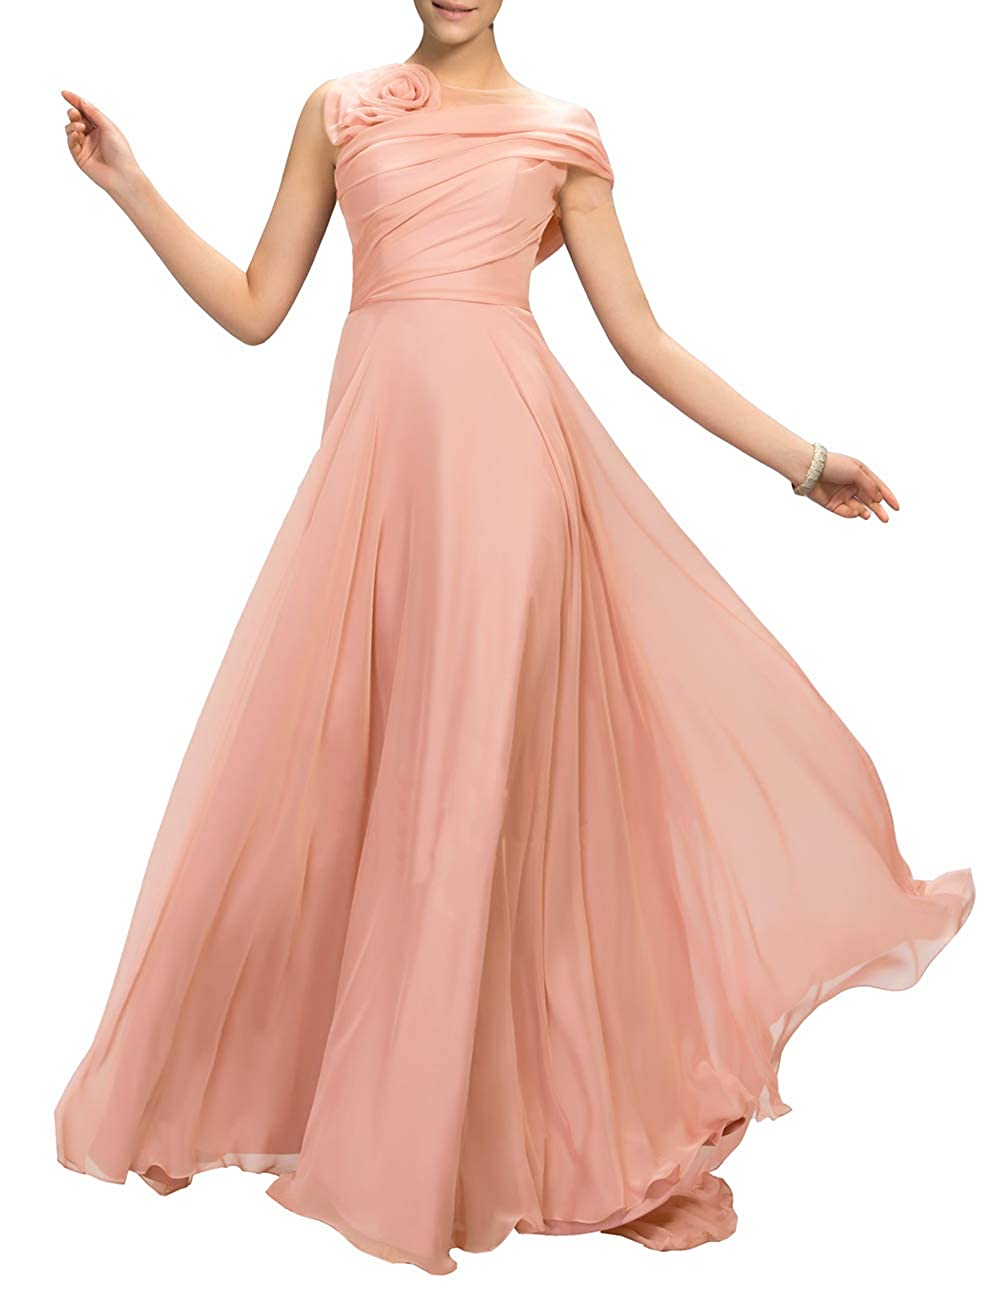 bluesh Uther Flower Long Prom Dress ALine Bridesmaid Dresses Formal Evening Party Gown